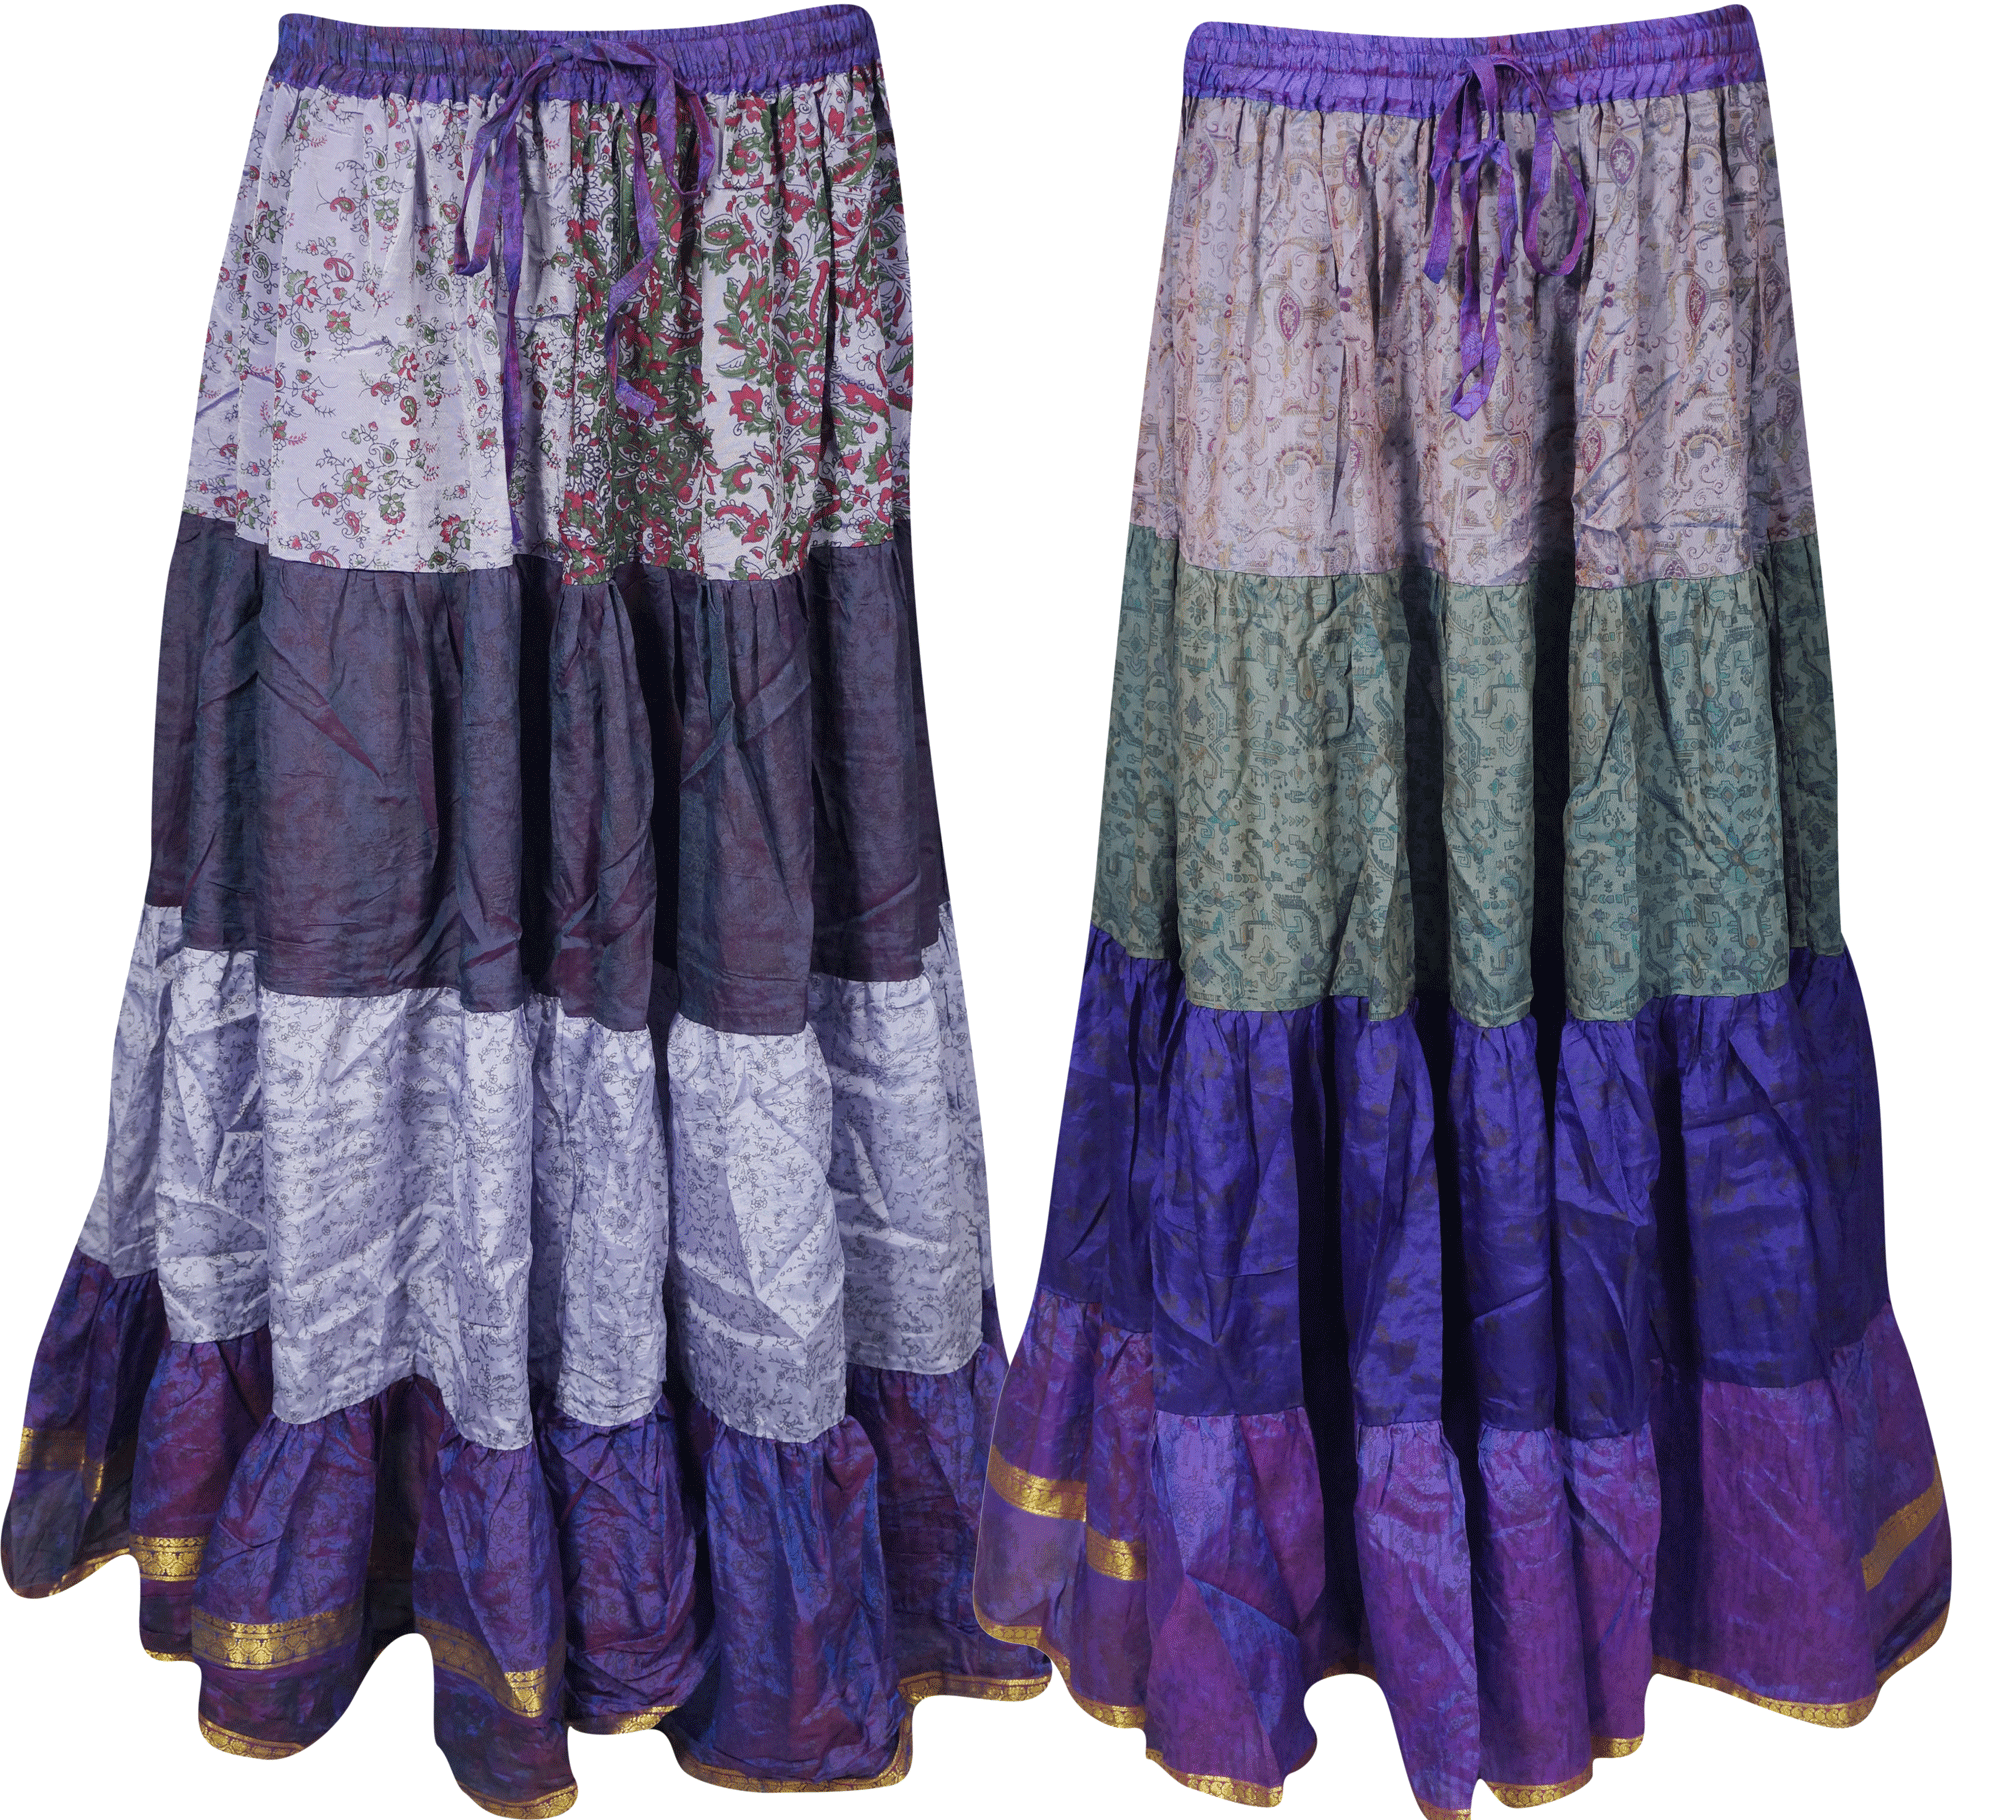 Mogul Bohemian Womens Long Skirts Vintage Silk Sari Flare Tiered Maxi Skirt Lot Of 2 Pcs